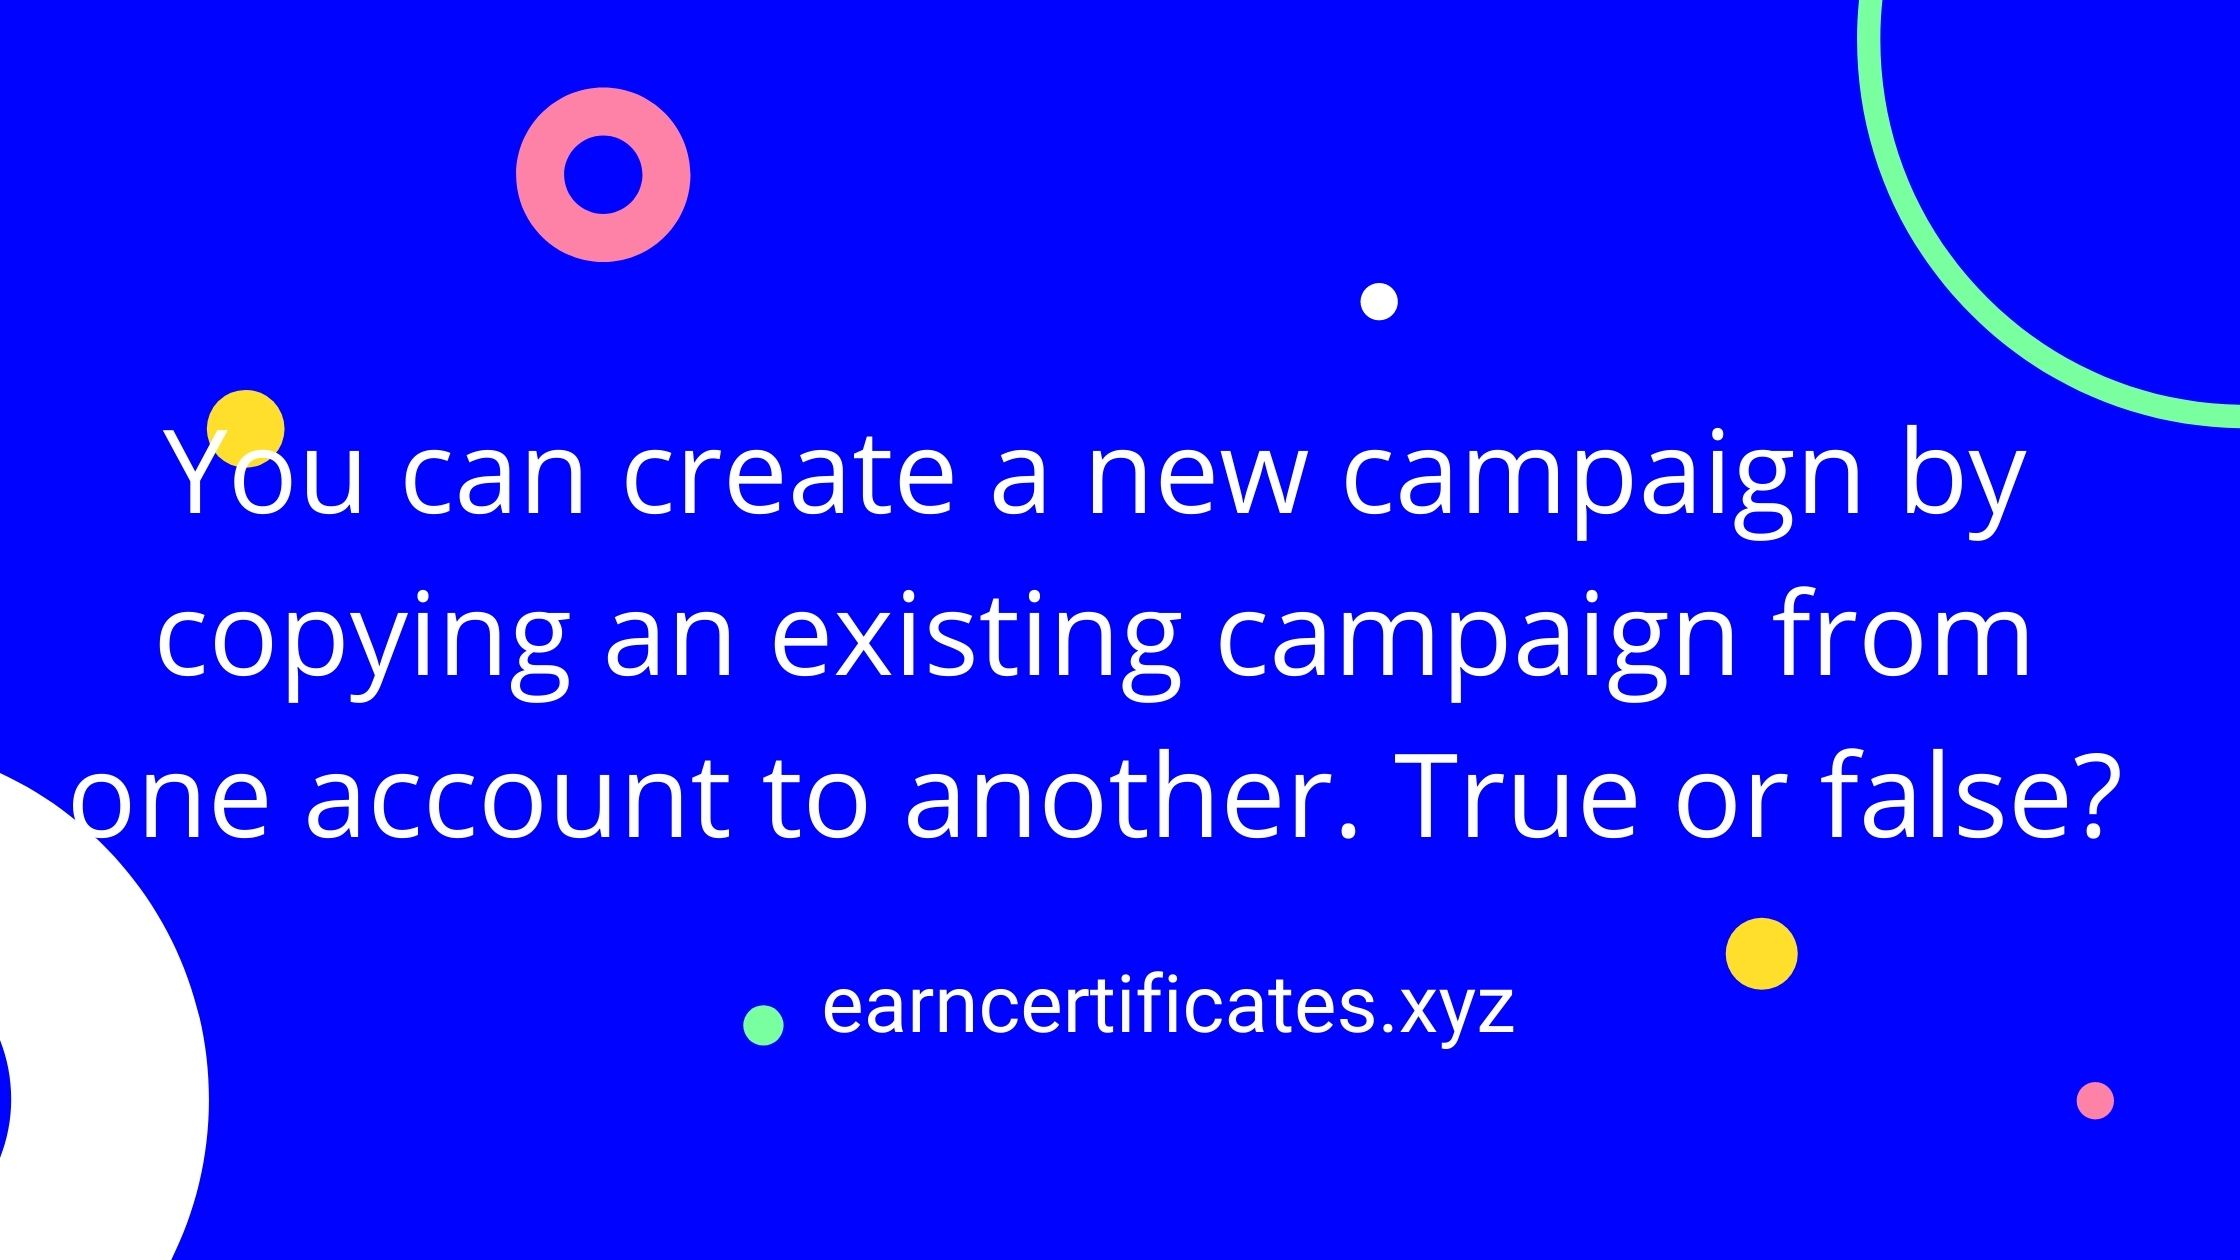 You can create a new campaign by copying an existing campaign from one account to another. True or false?